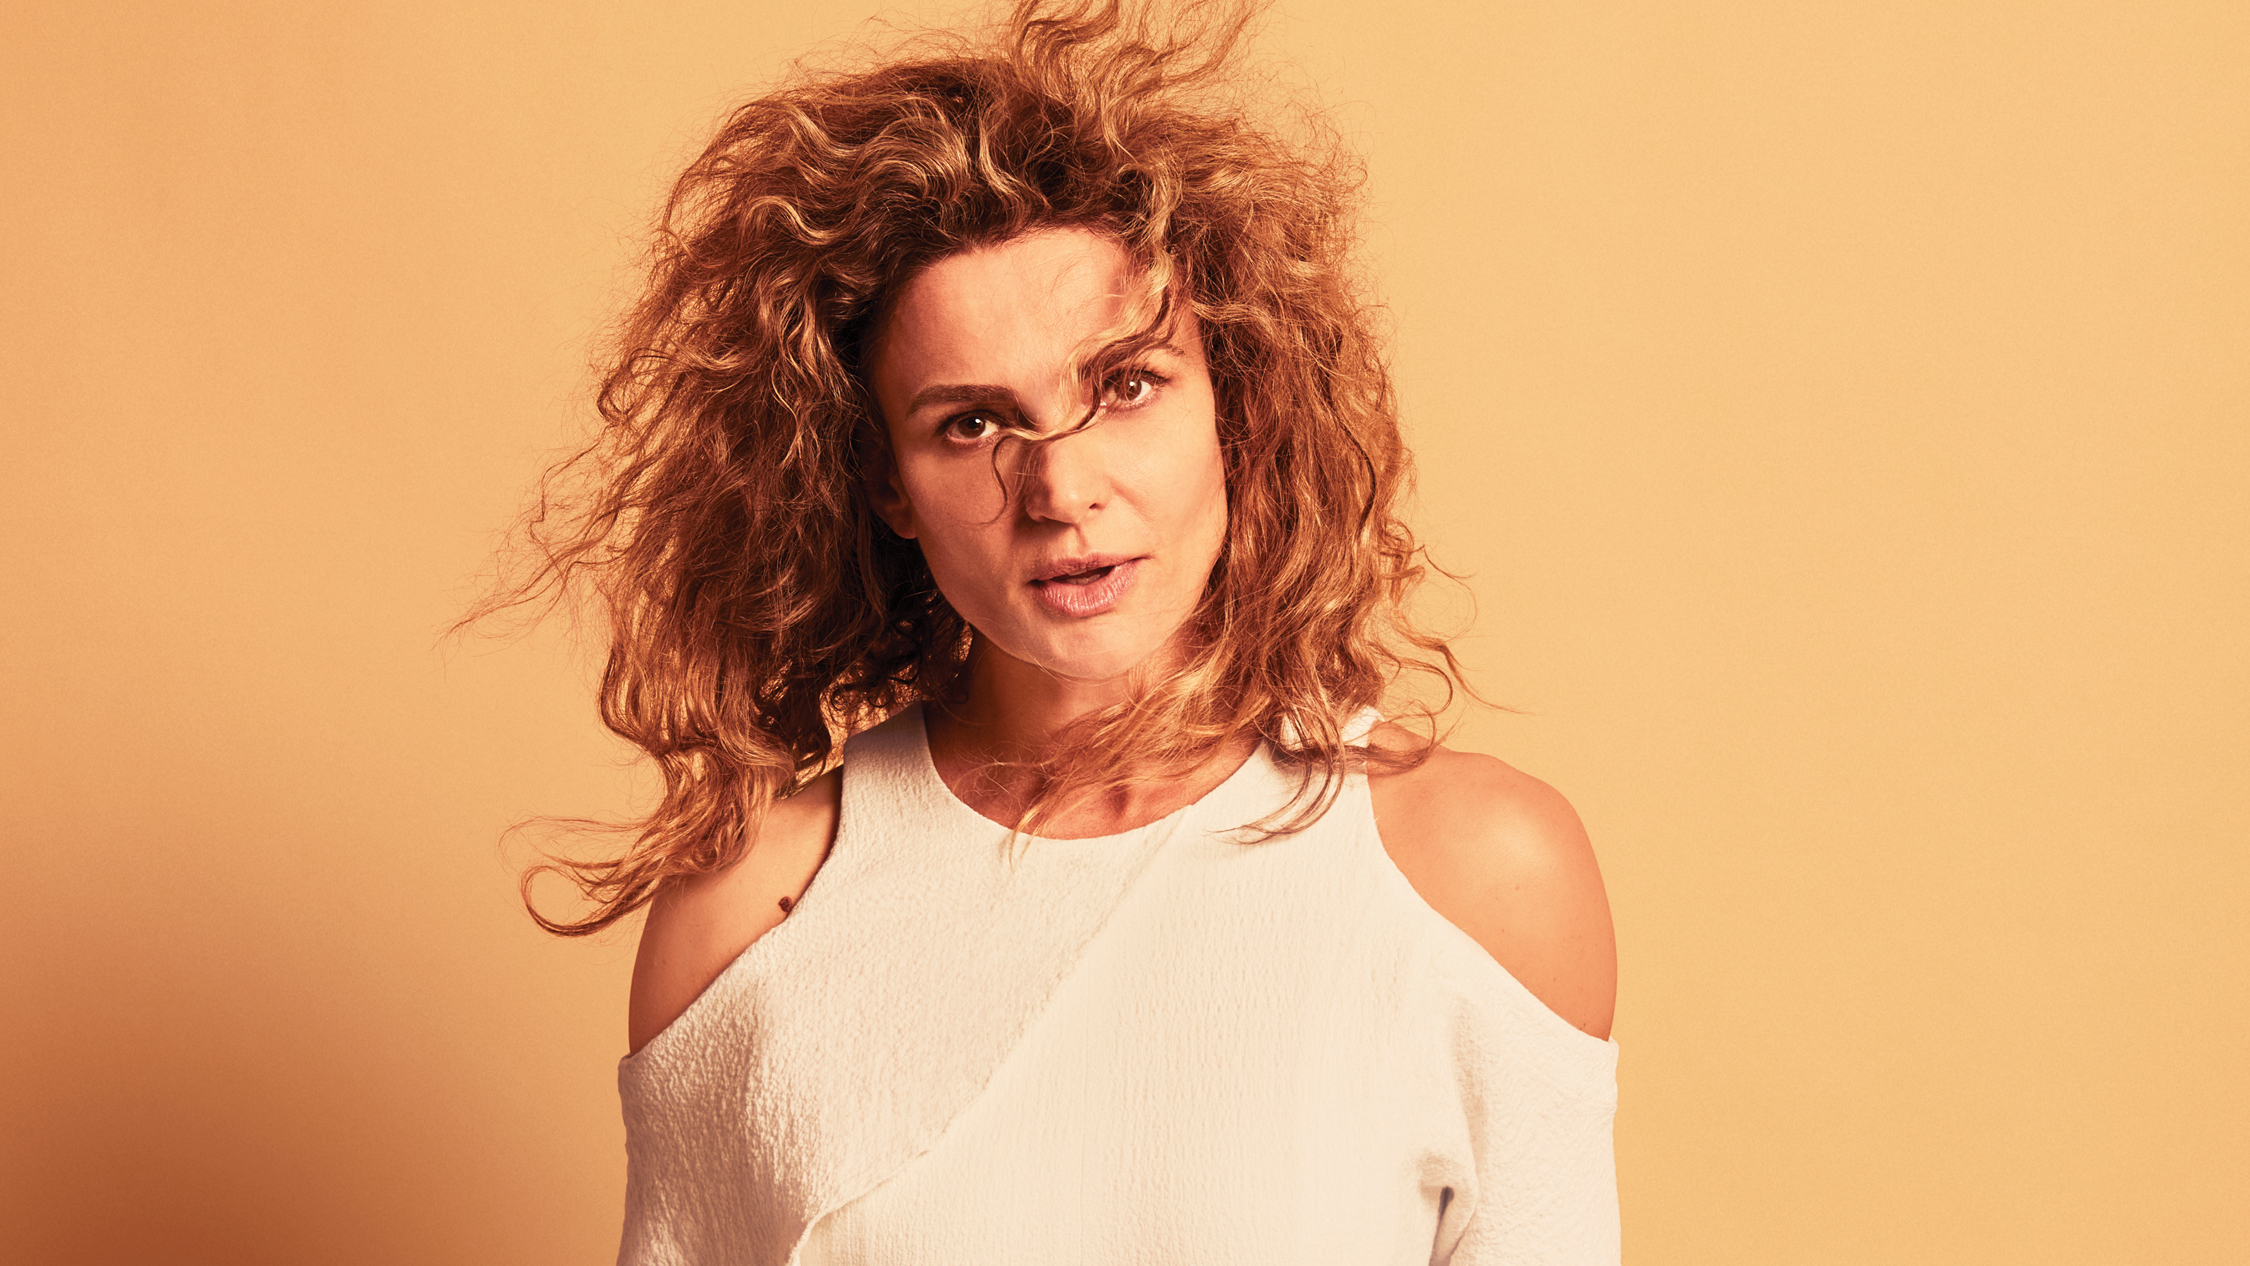 See Danielle Cormack in this hilarious take on a classic